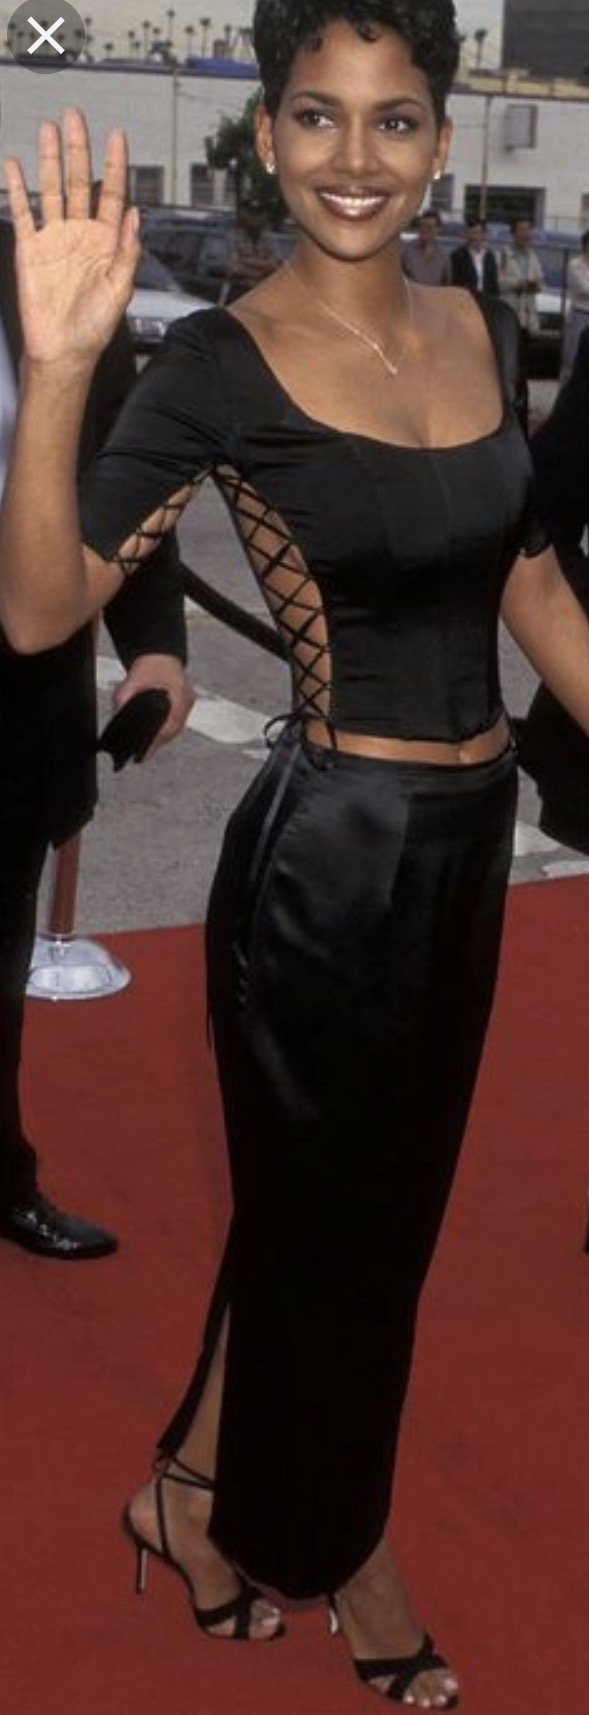 halle berry in 90s dress